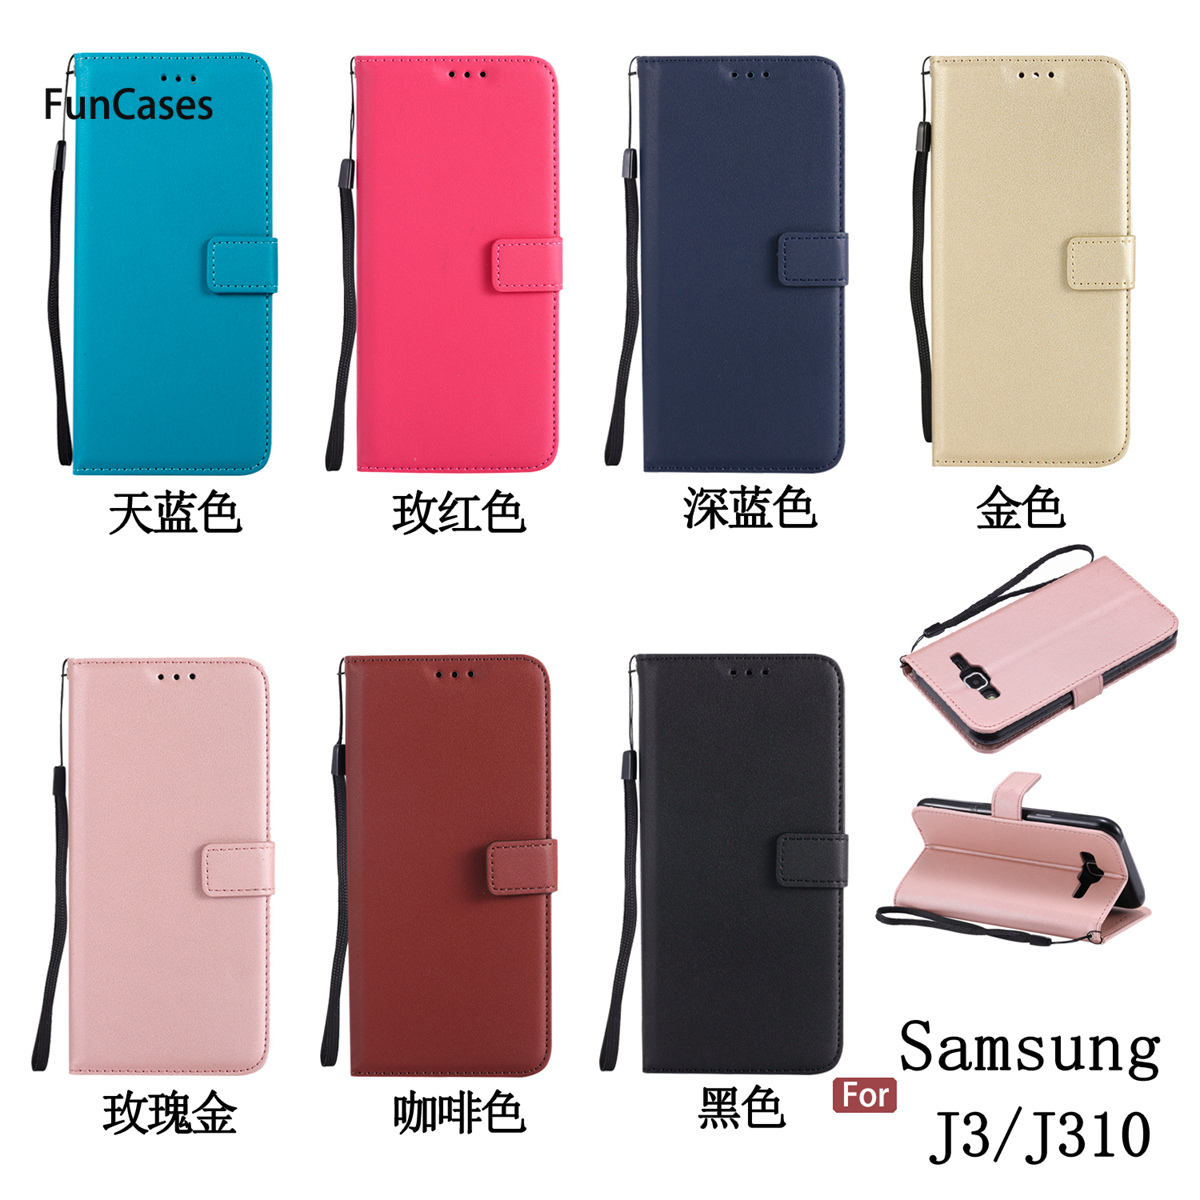 Colorful PU Leather Case sFor Hoesjes Samsung <font><b>J3</b></font> Bracket Case Para Squishy Mobile Phone Case For Samsung Galaxy <font><b>J3</b></font> <font><b>2016</b></font> Cellular image